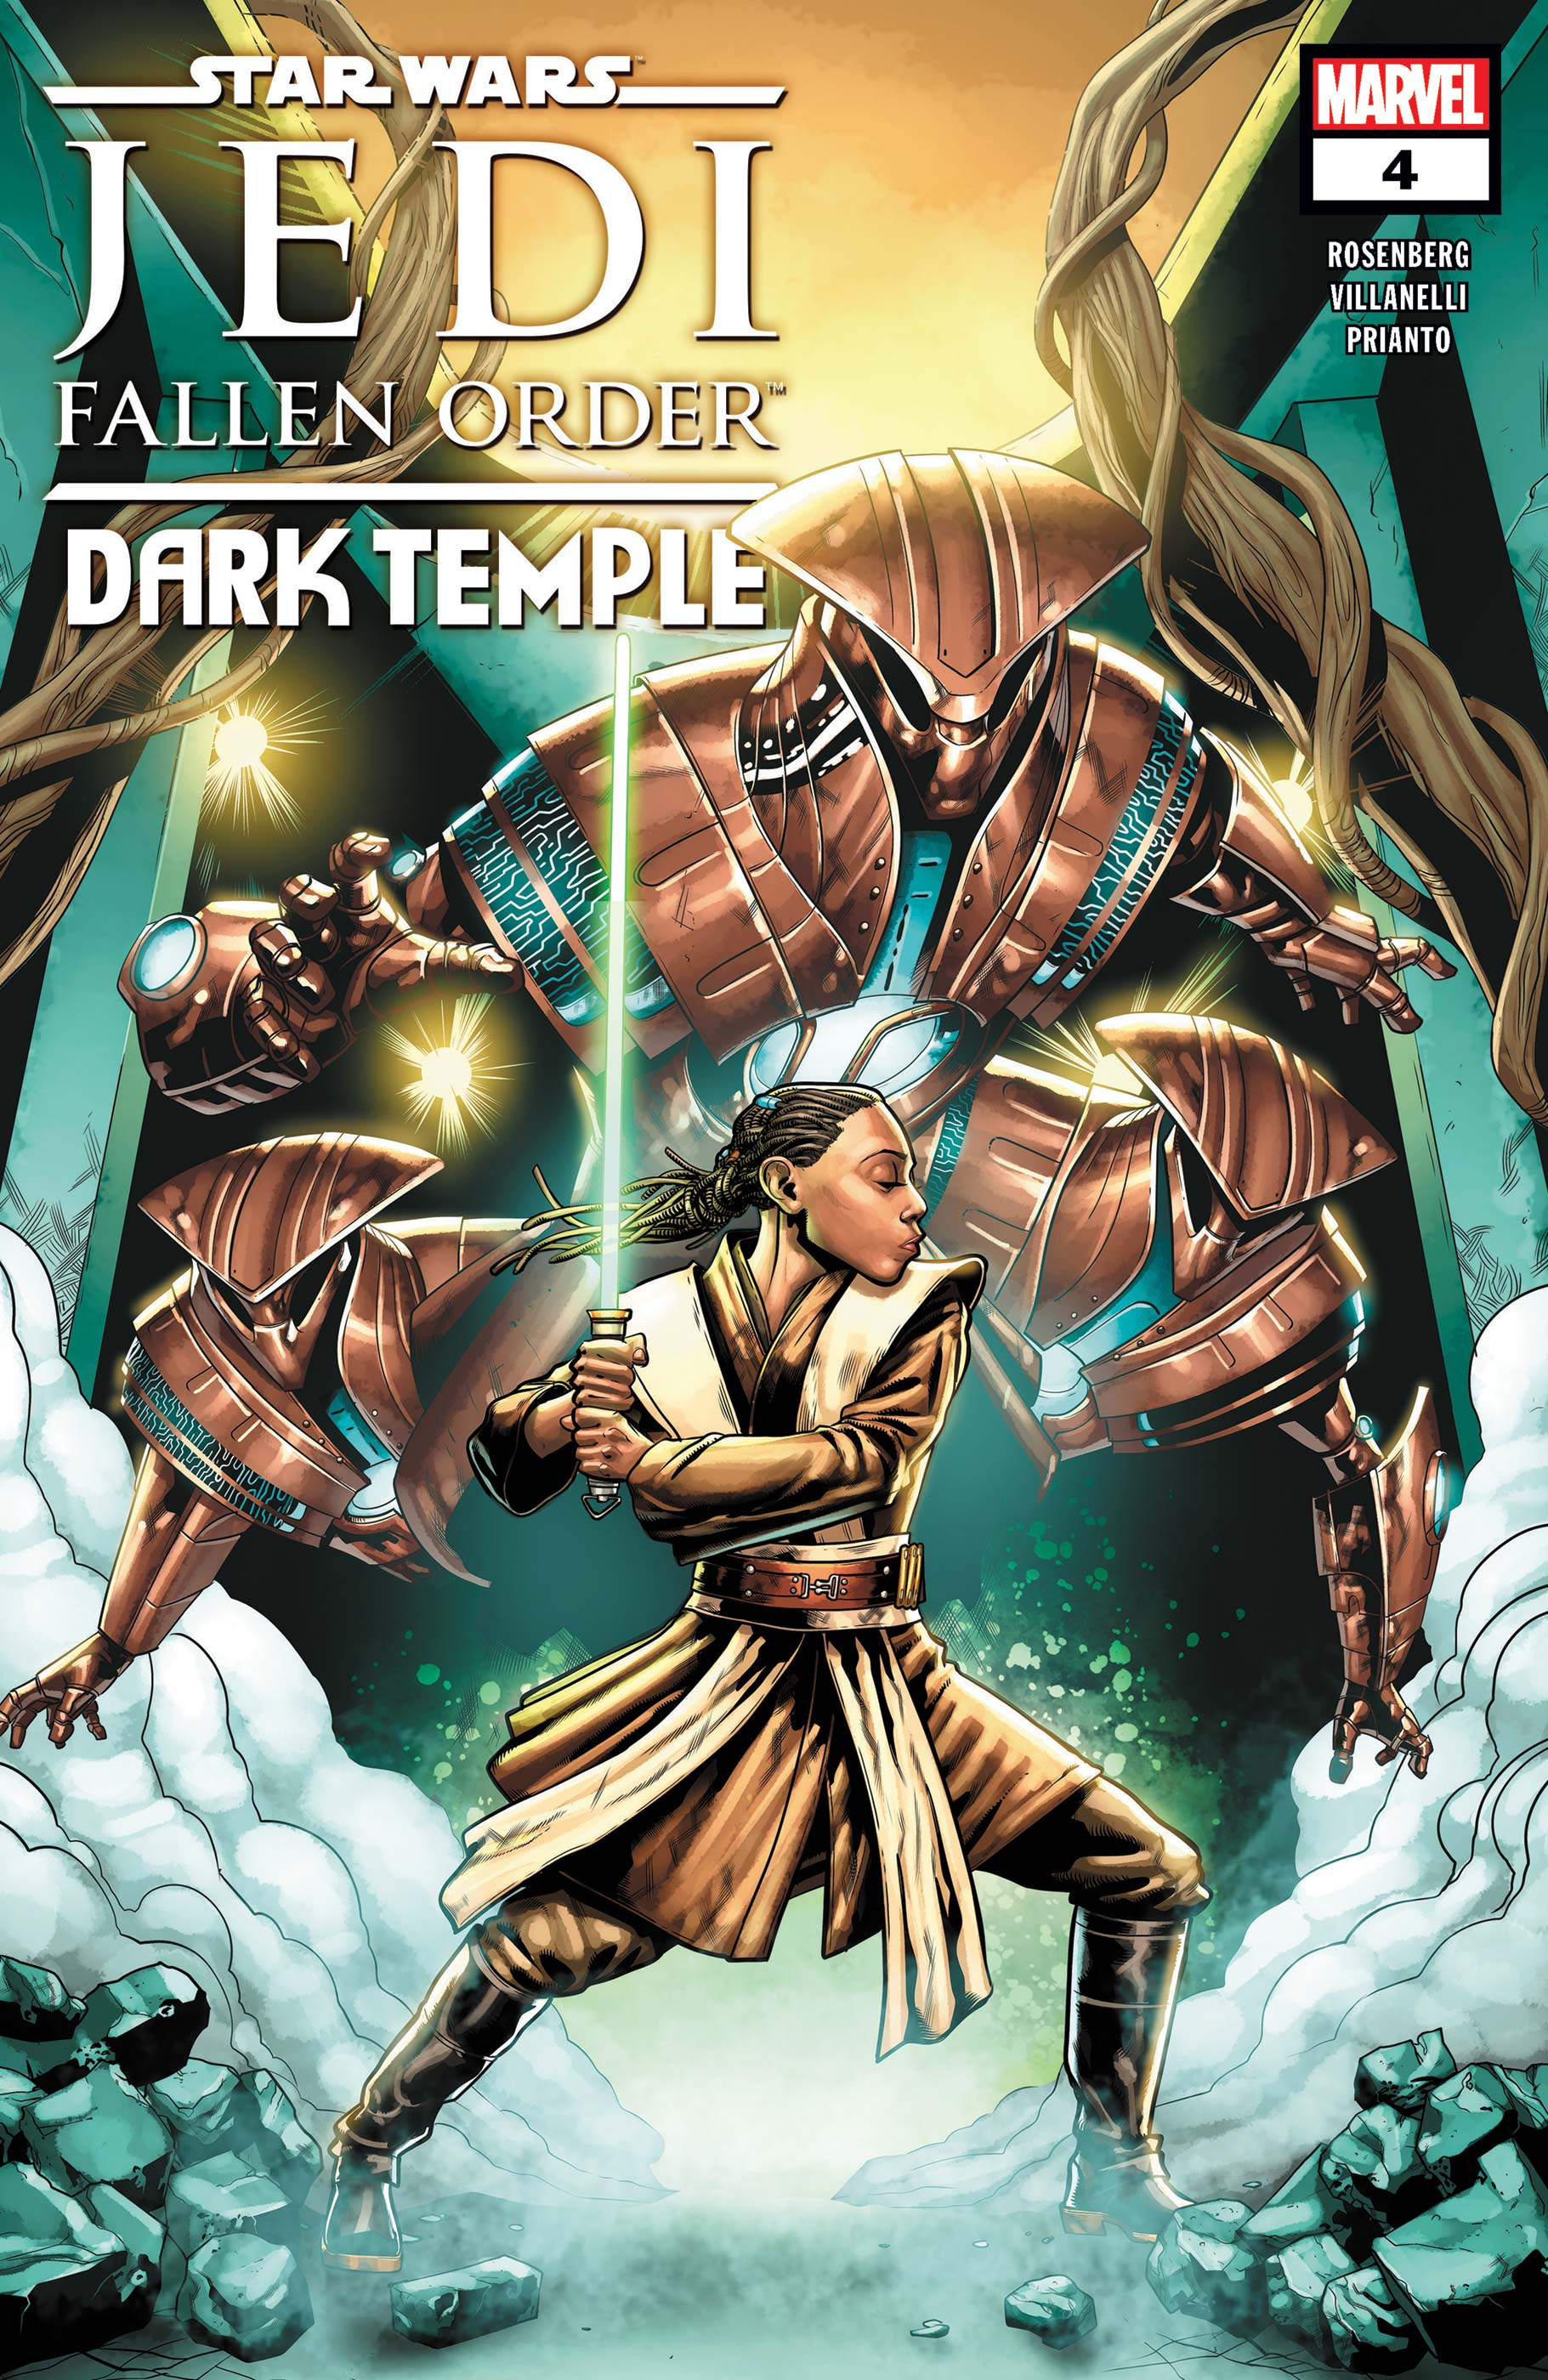 Star Wars: Jedi Fallen Order - Dark Temple (2019) #4